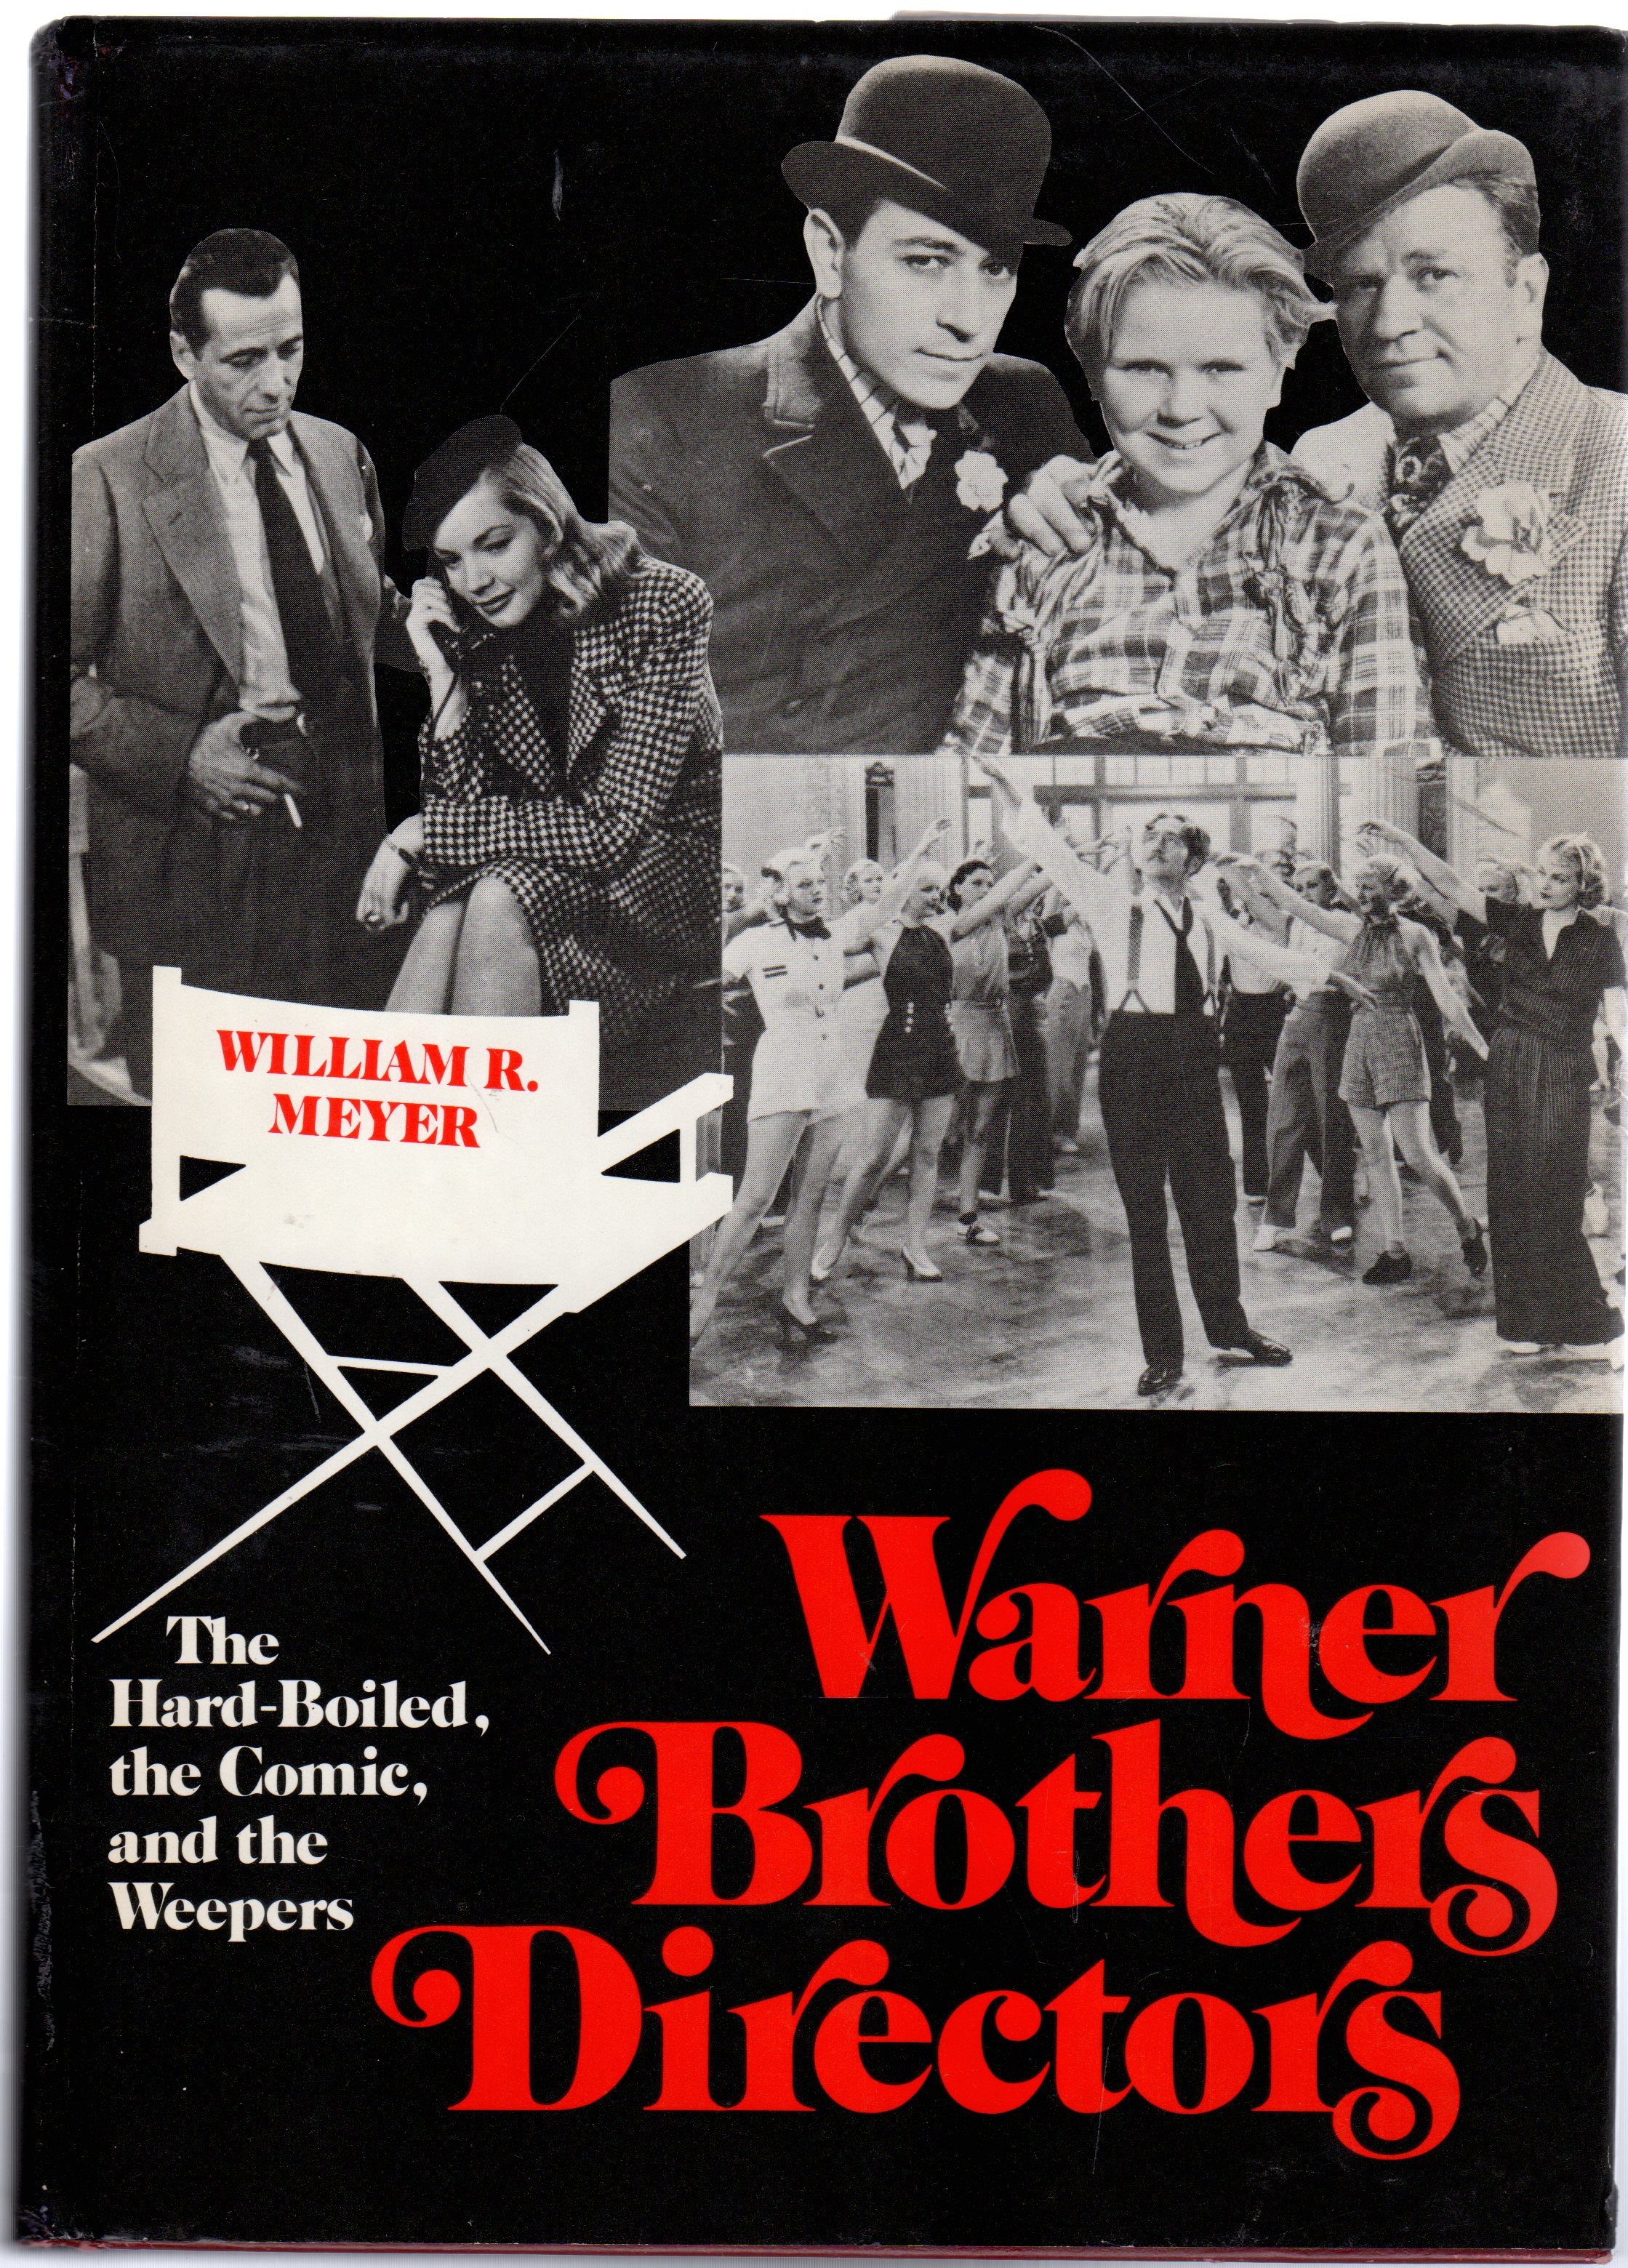 Image for Warner Brothers Directors : The hard-boiled, the comic, and the Weepers